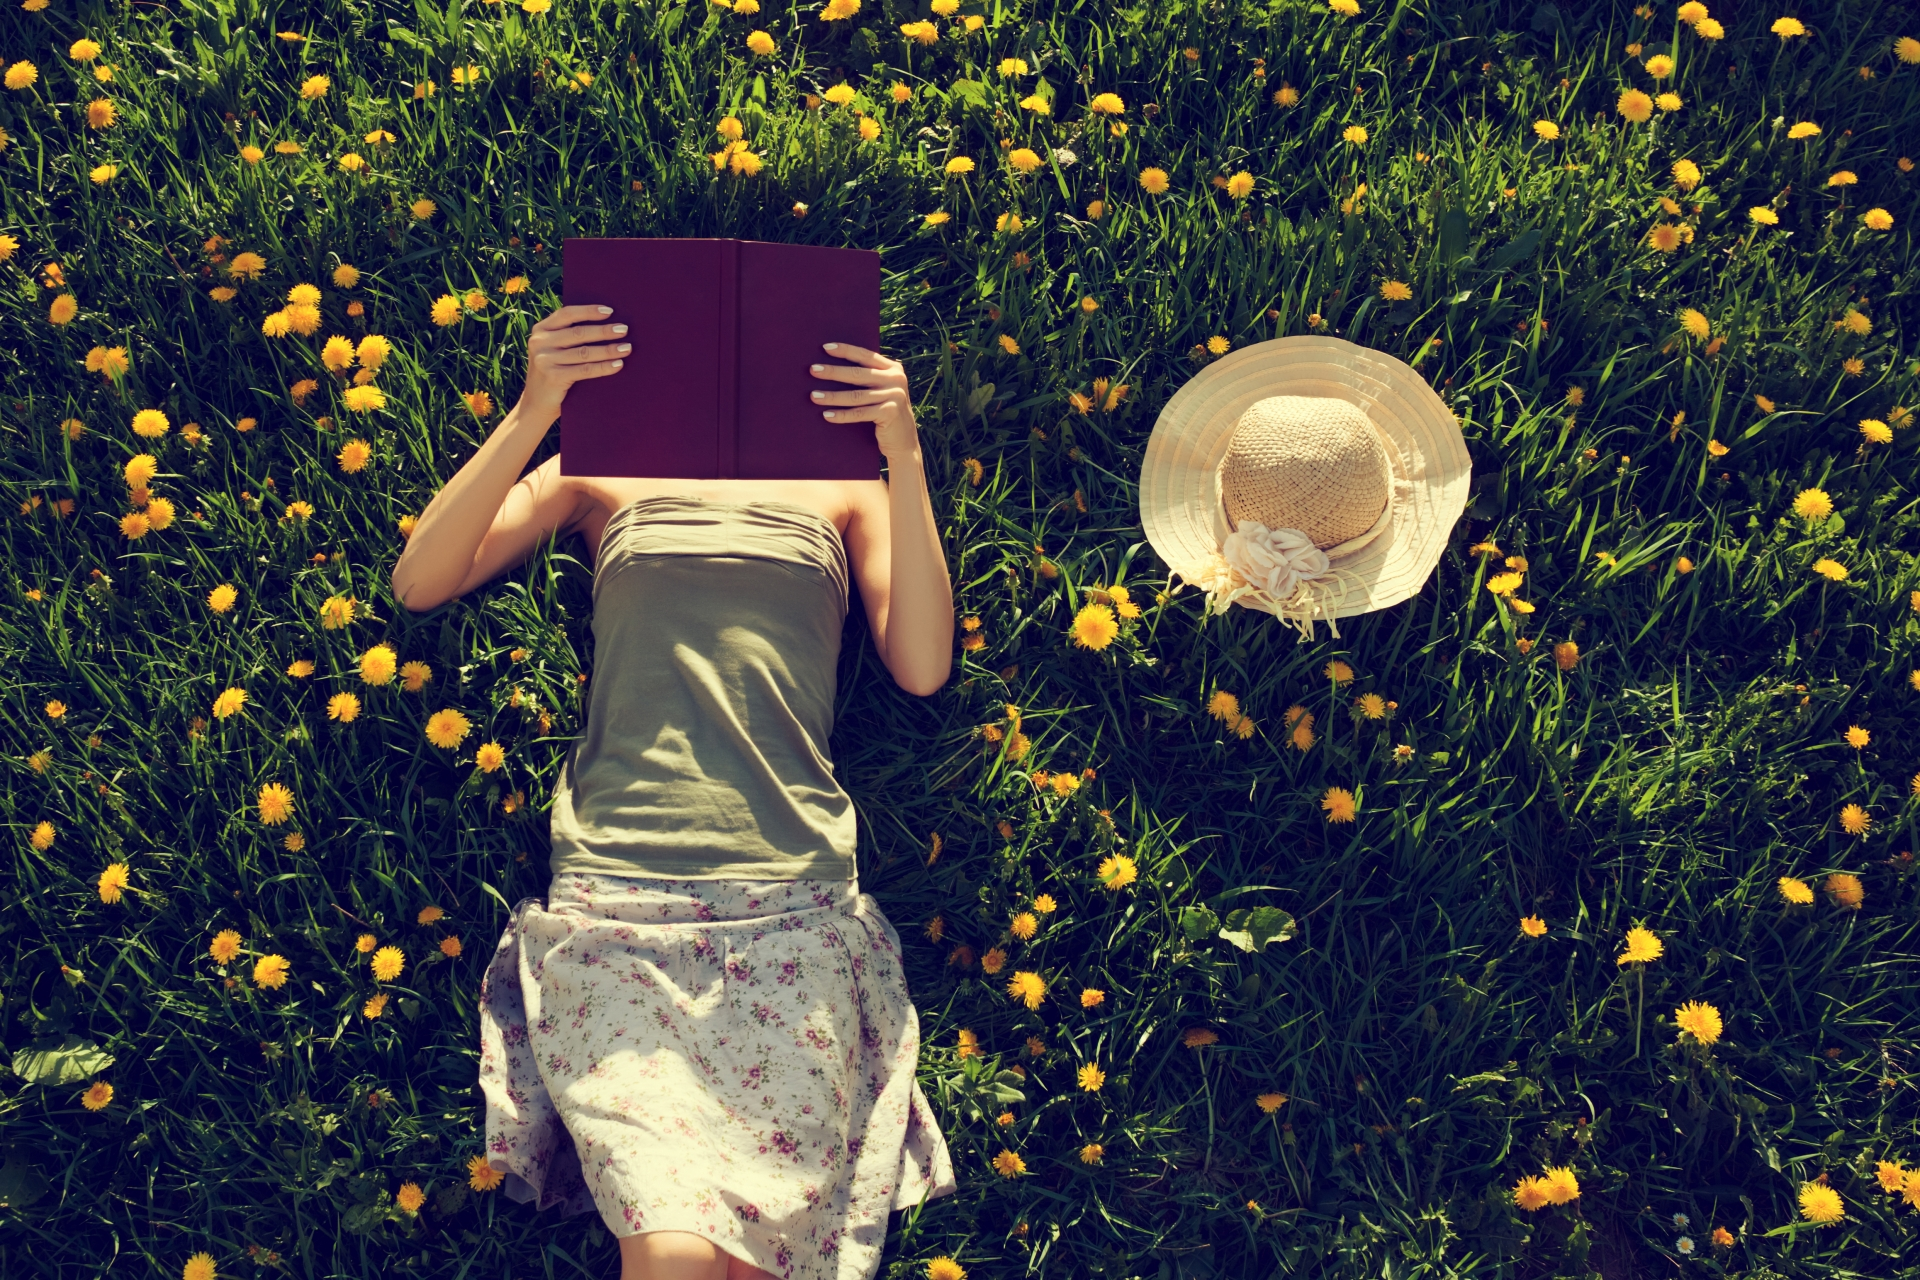 Summer Is Here - Feast Your Eyes on LoveReading's Ever-growing List of Summer Reading Recommendations